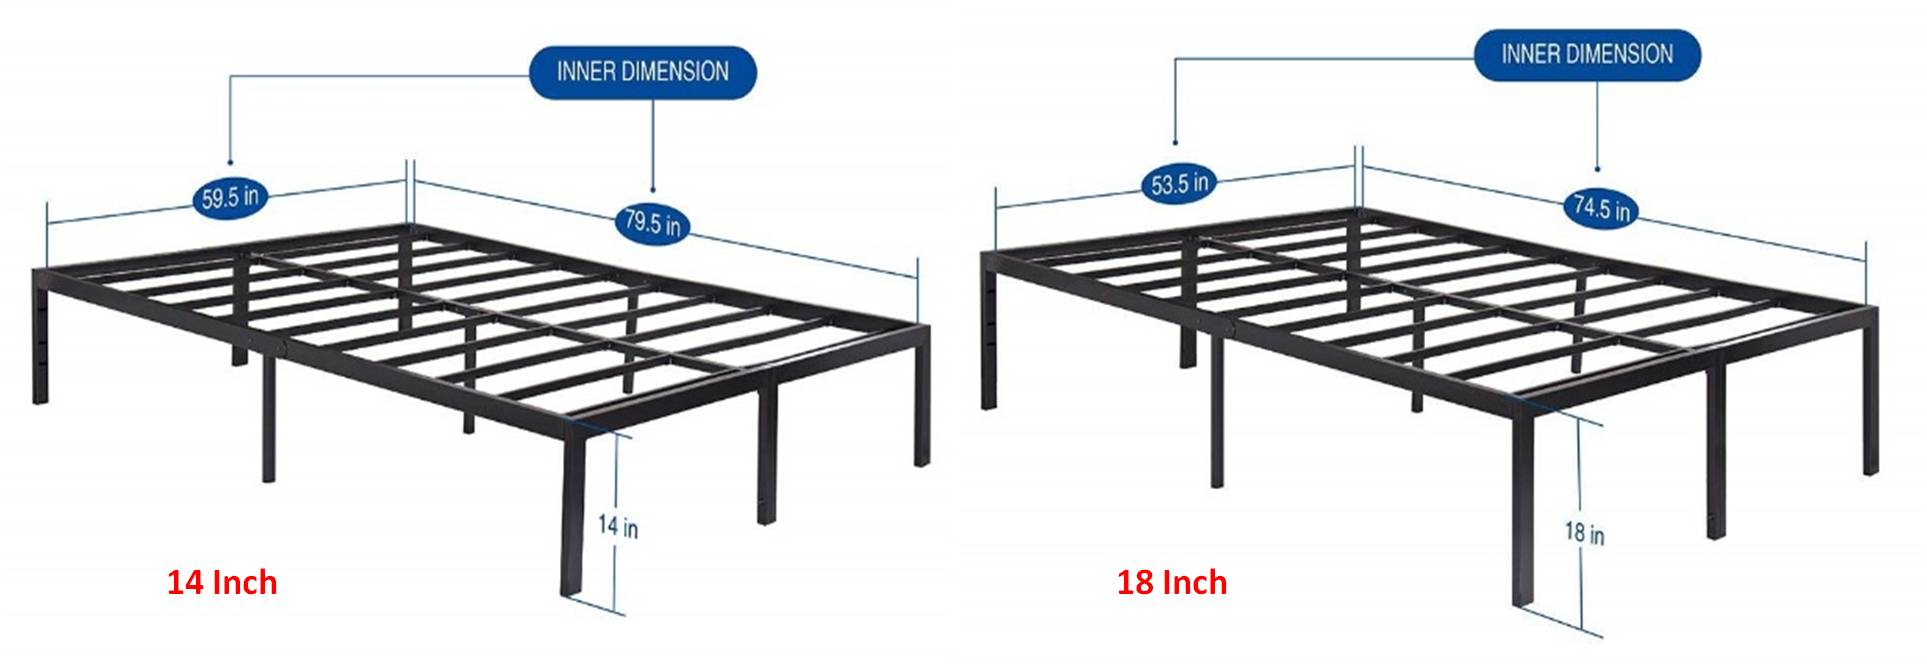 Olee Sleep Bed Frame Reviews T 3000 14 Inch And 18 Inch